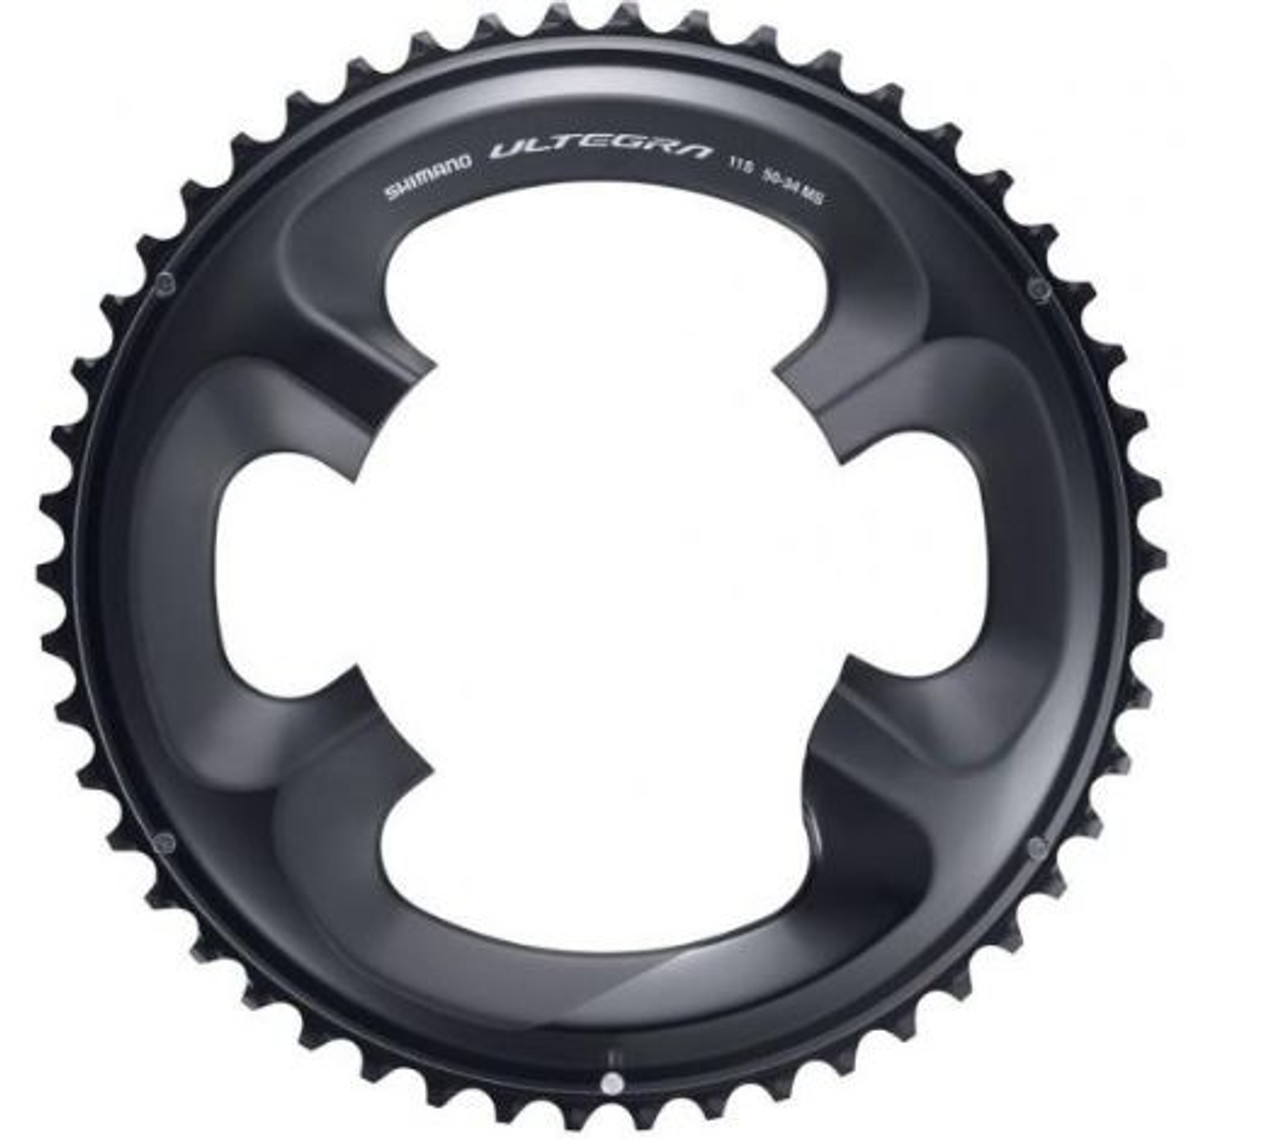 50550a86924 Shimano Ultegra R8000 Outer Chainring - Glory Cycles